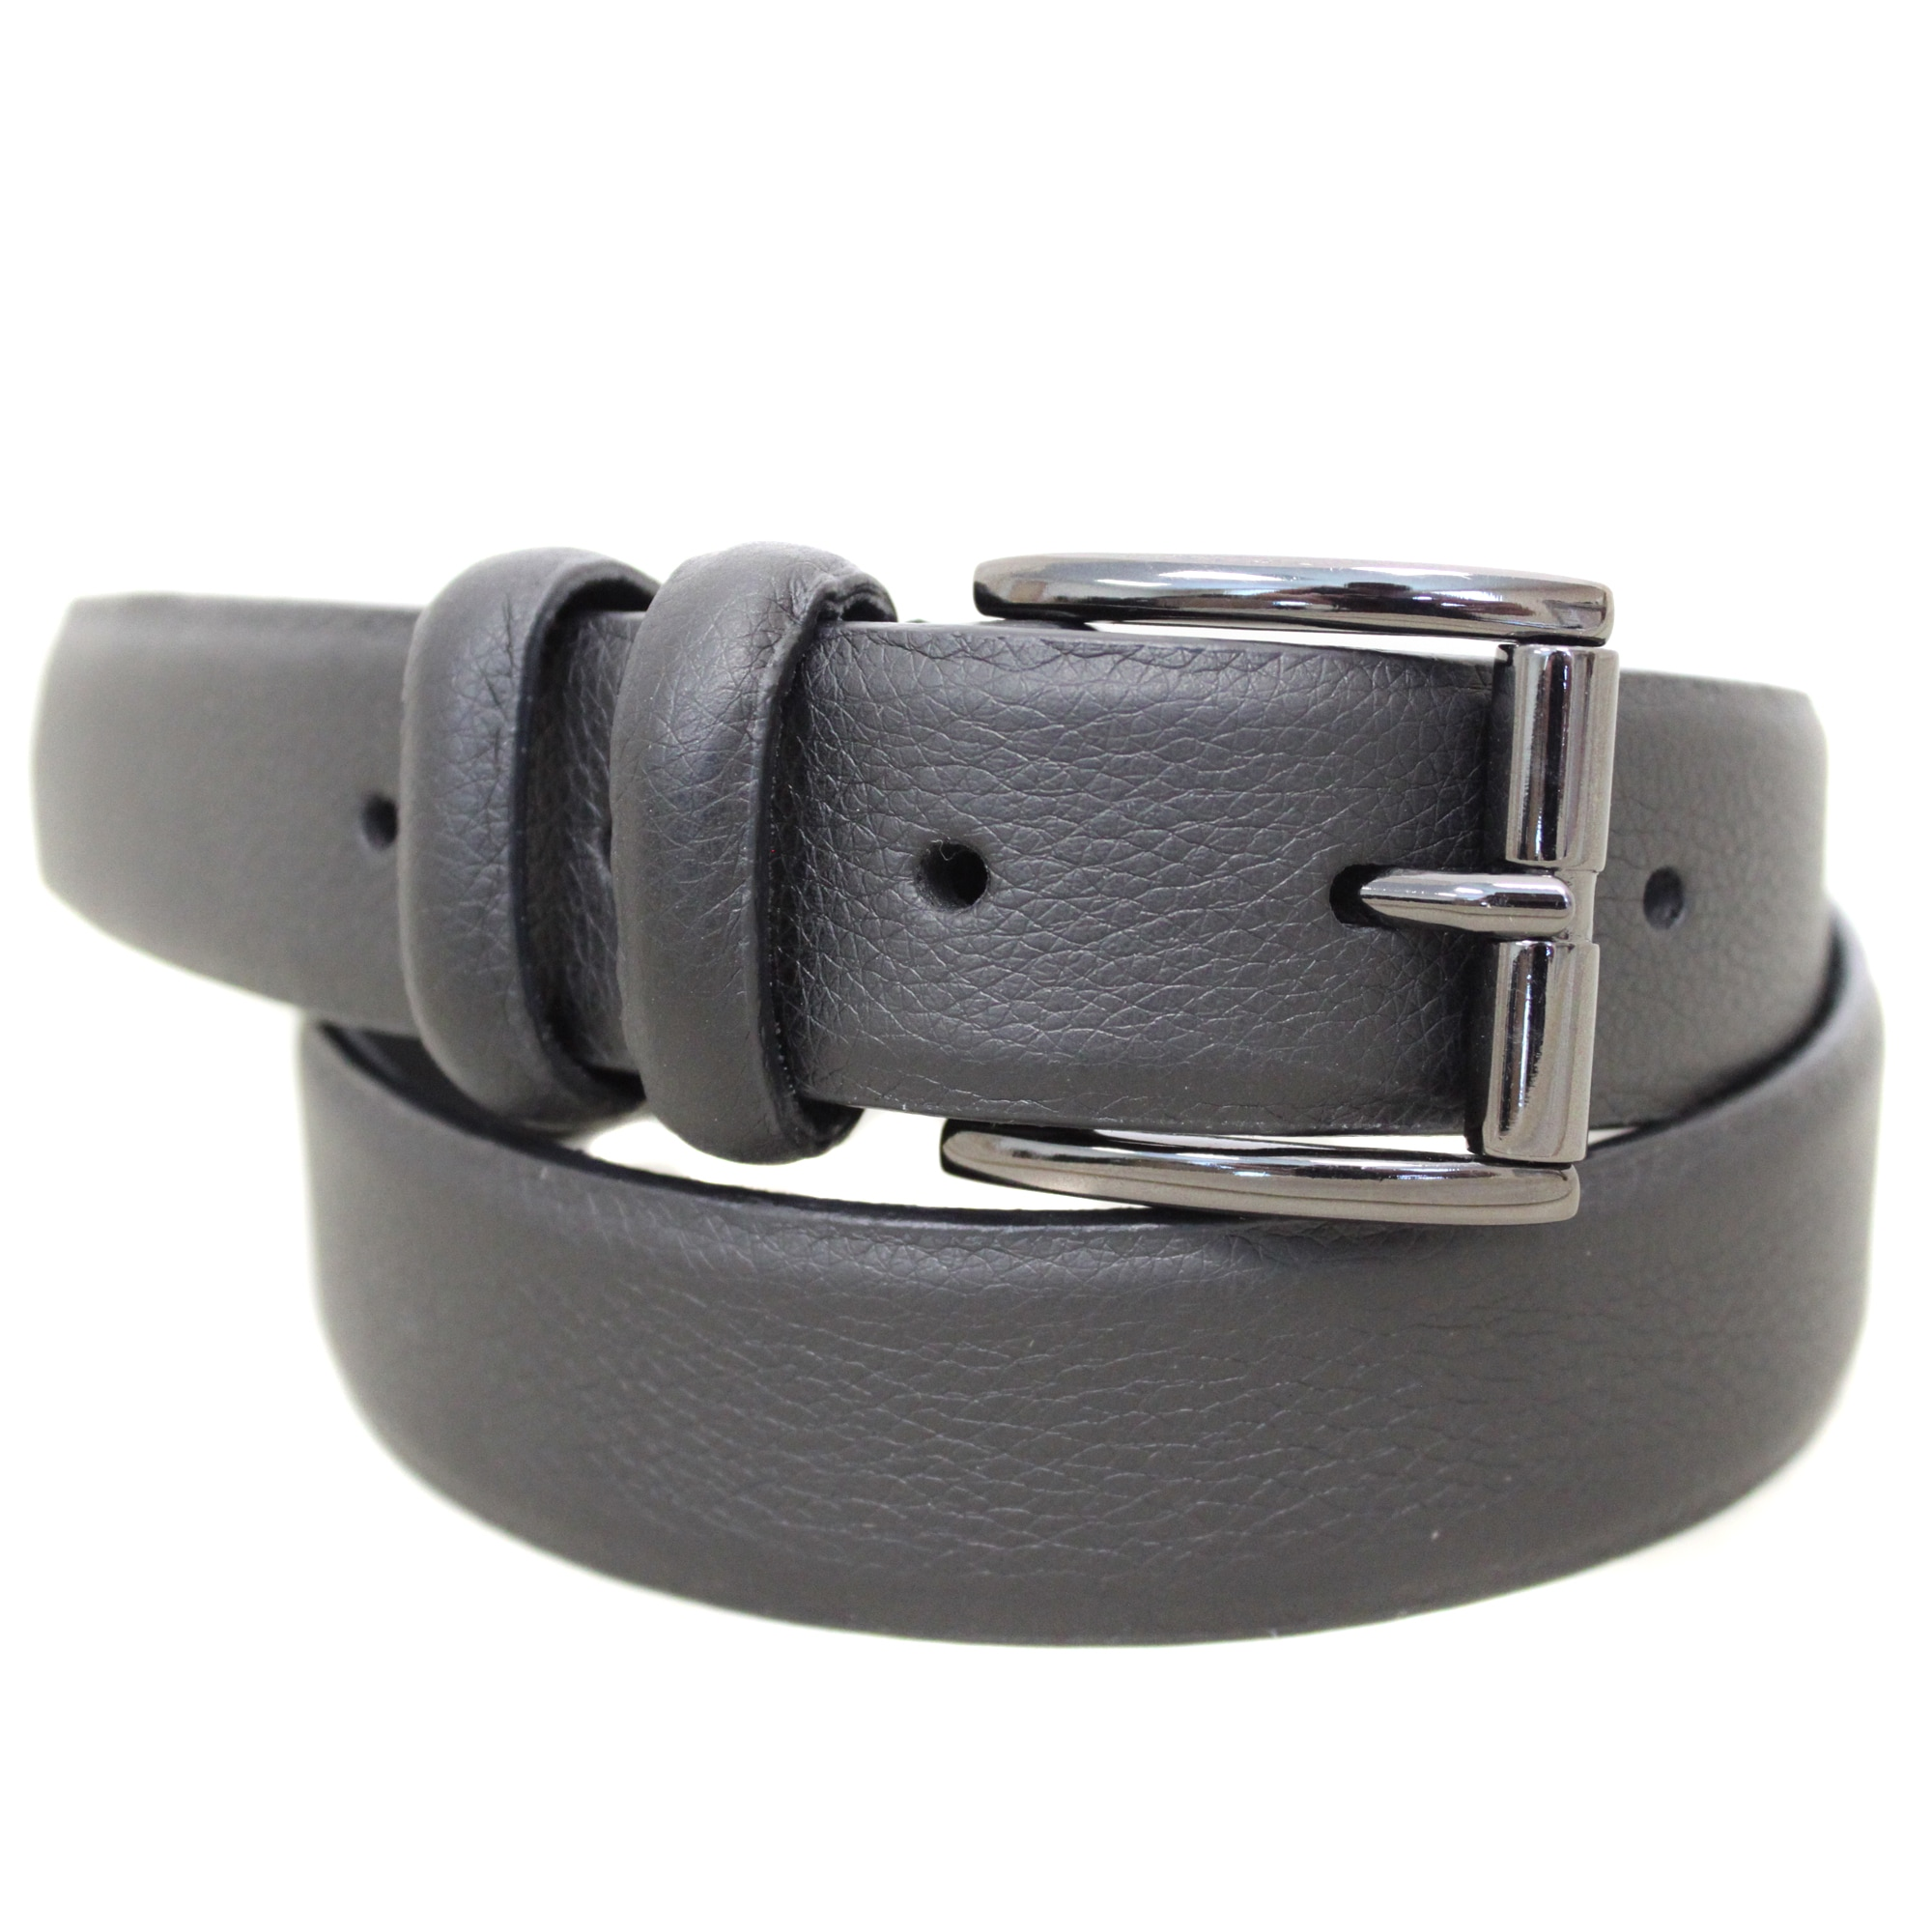 entourage s leather dress belt free shipping on